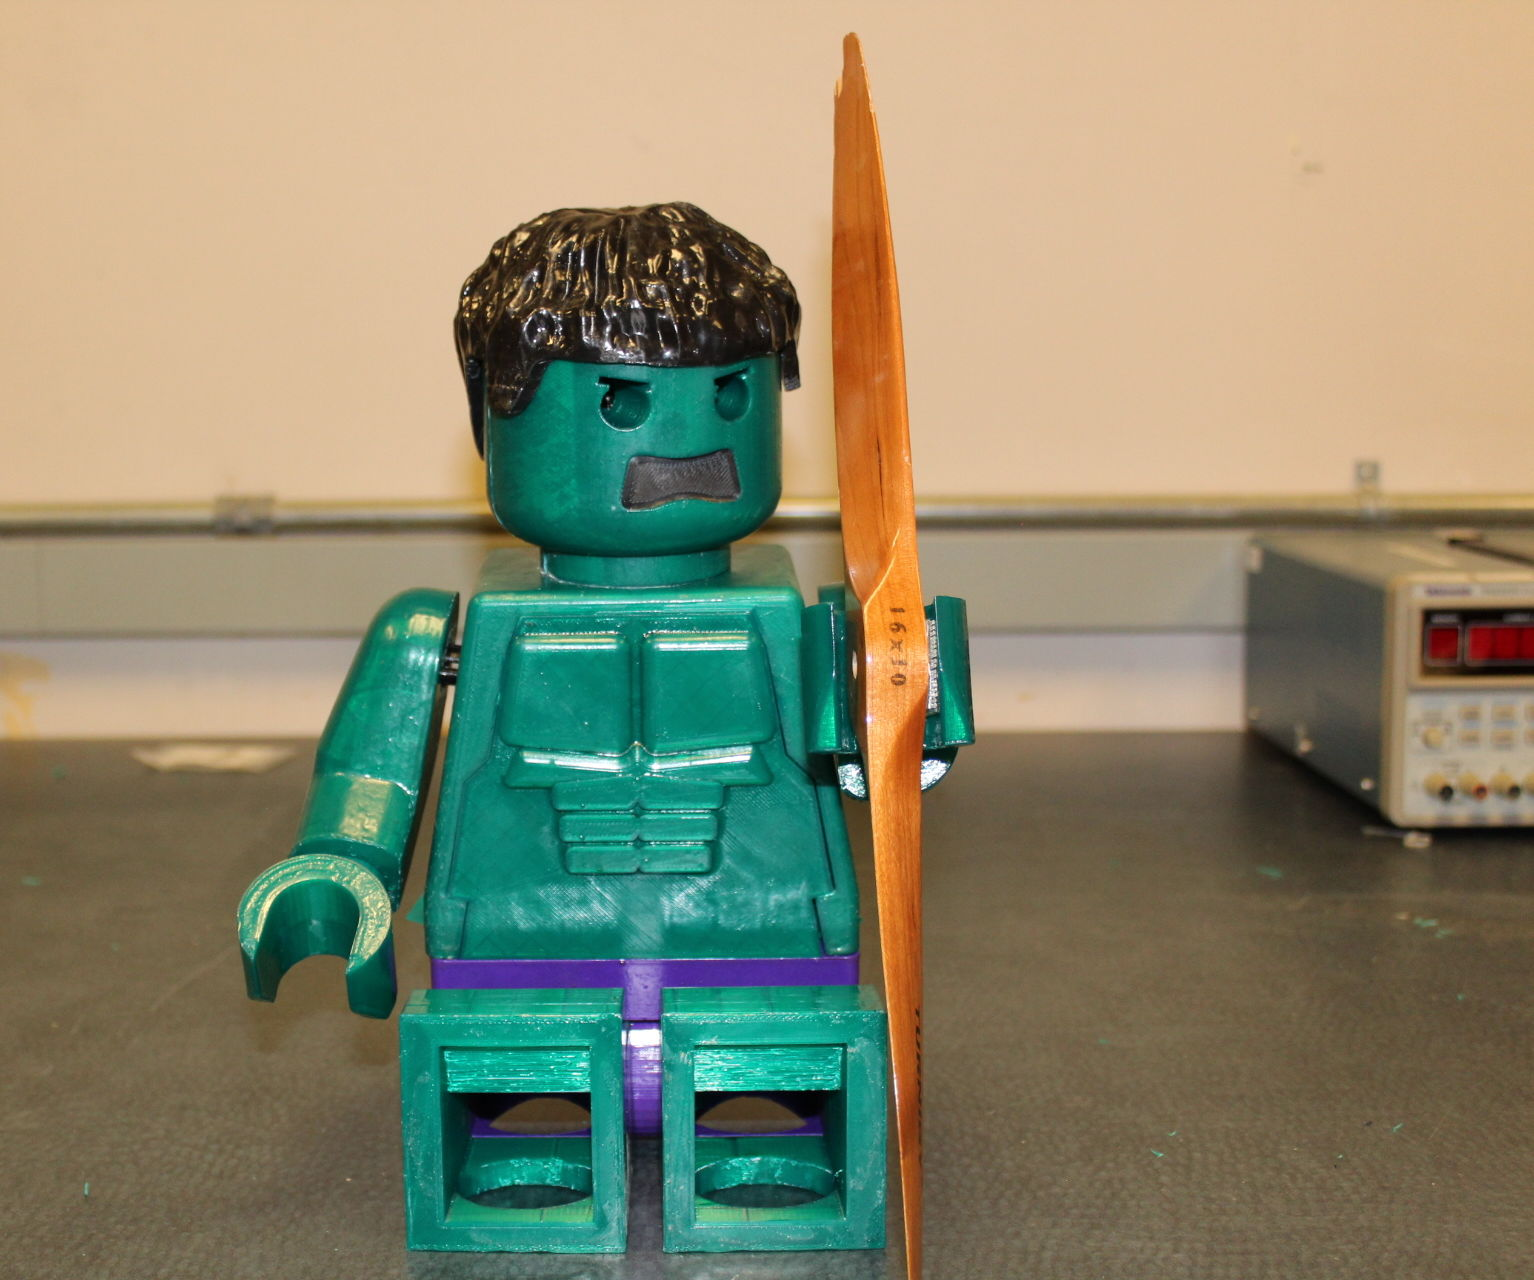 Giant Hulk MiniFig (10:1 Scale) With a Twist